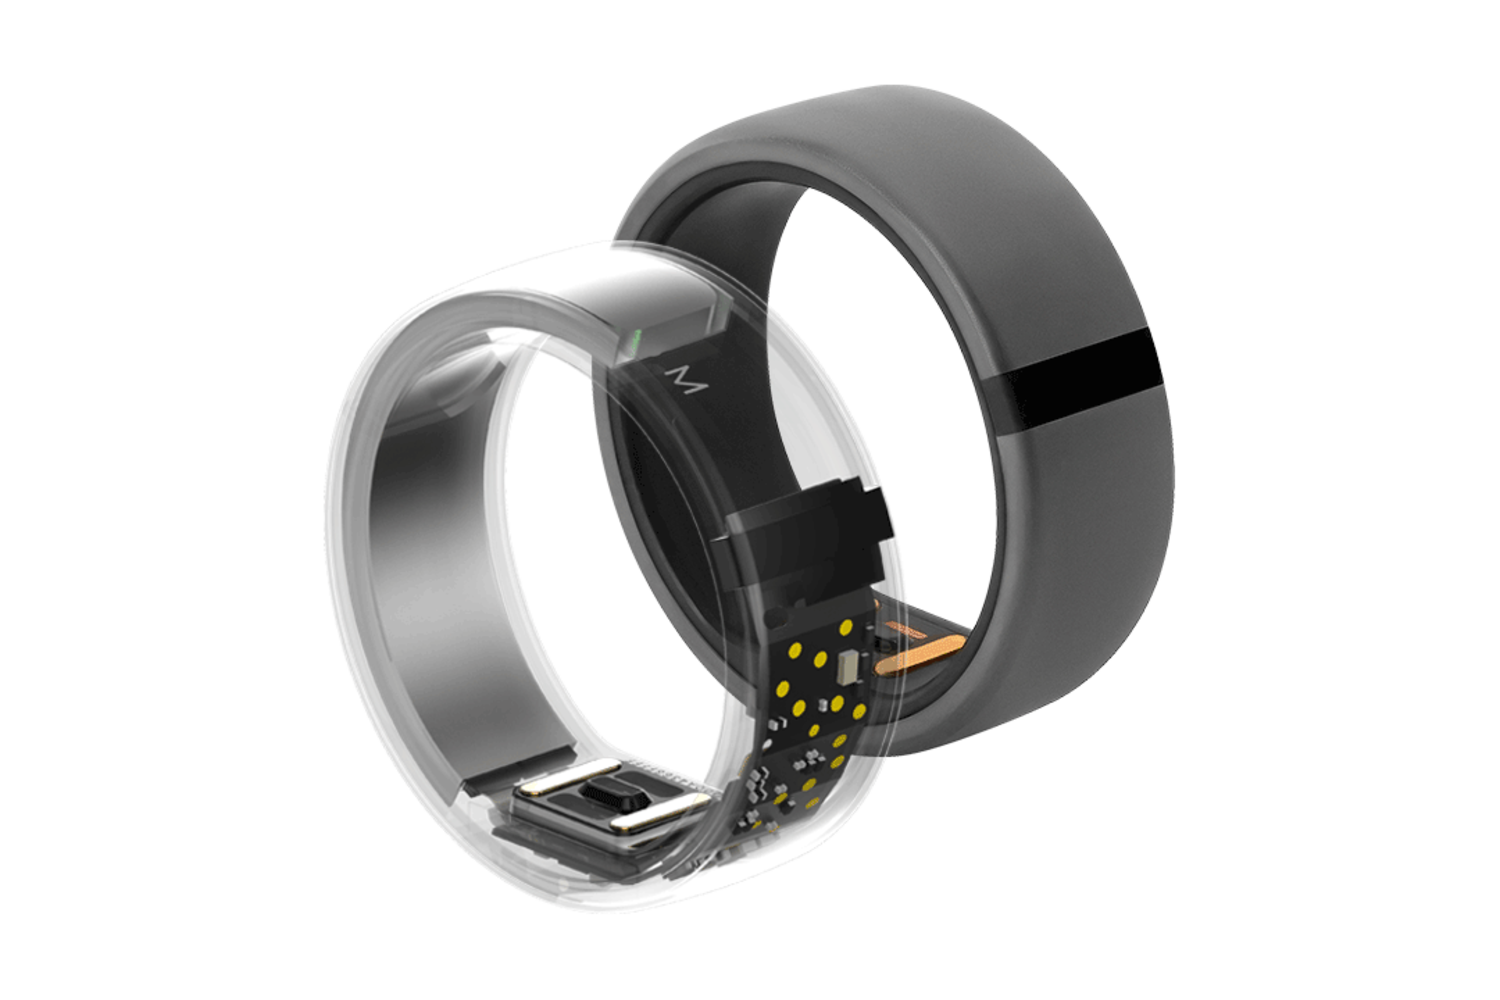 Review Motivs Smart Ring Is A Feat Of Miniature Engineering